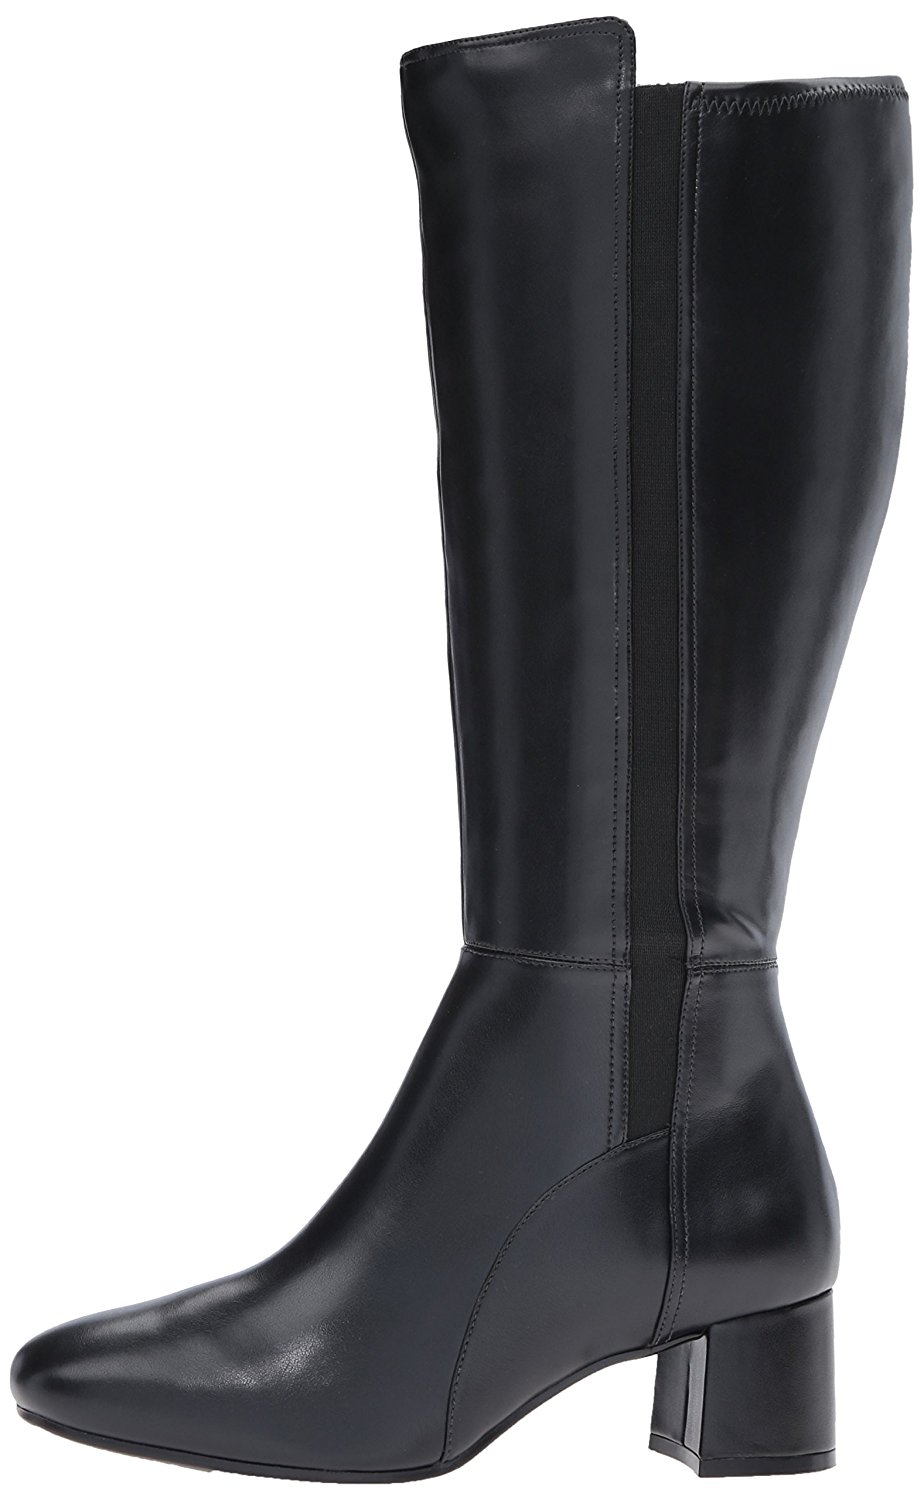 Naturalizer Womens NAPLES Closed Toe Mid-Calf Riding Boots by Naturalizer